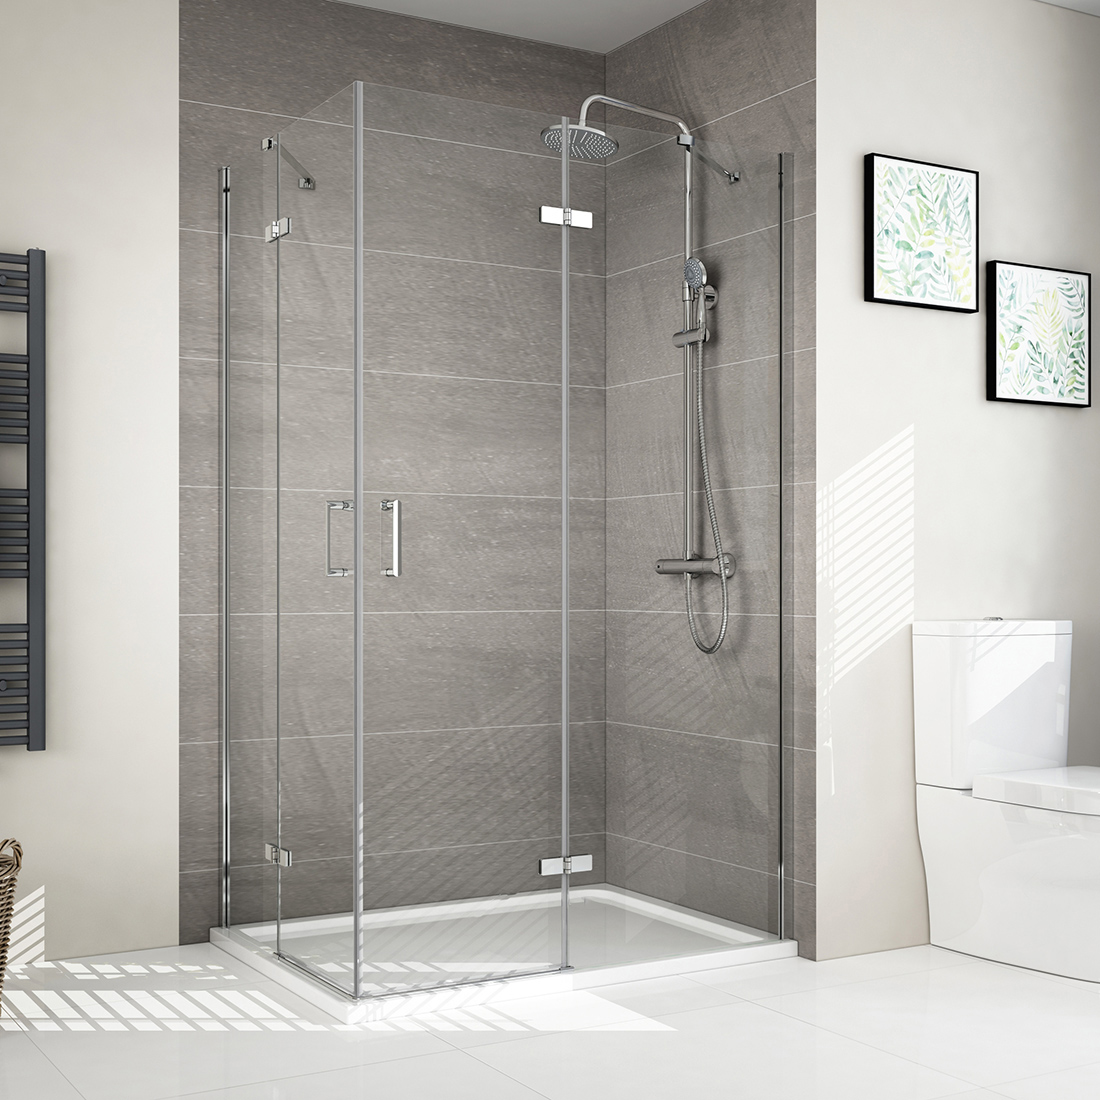 Details About Frameless Hinged Shower Enclosure Door Corner Entry 6mm Glass Cubicle Door Uk